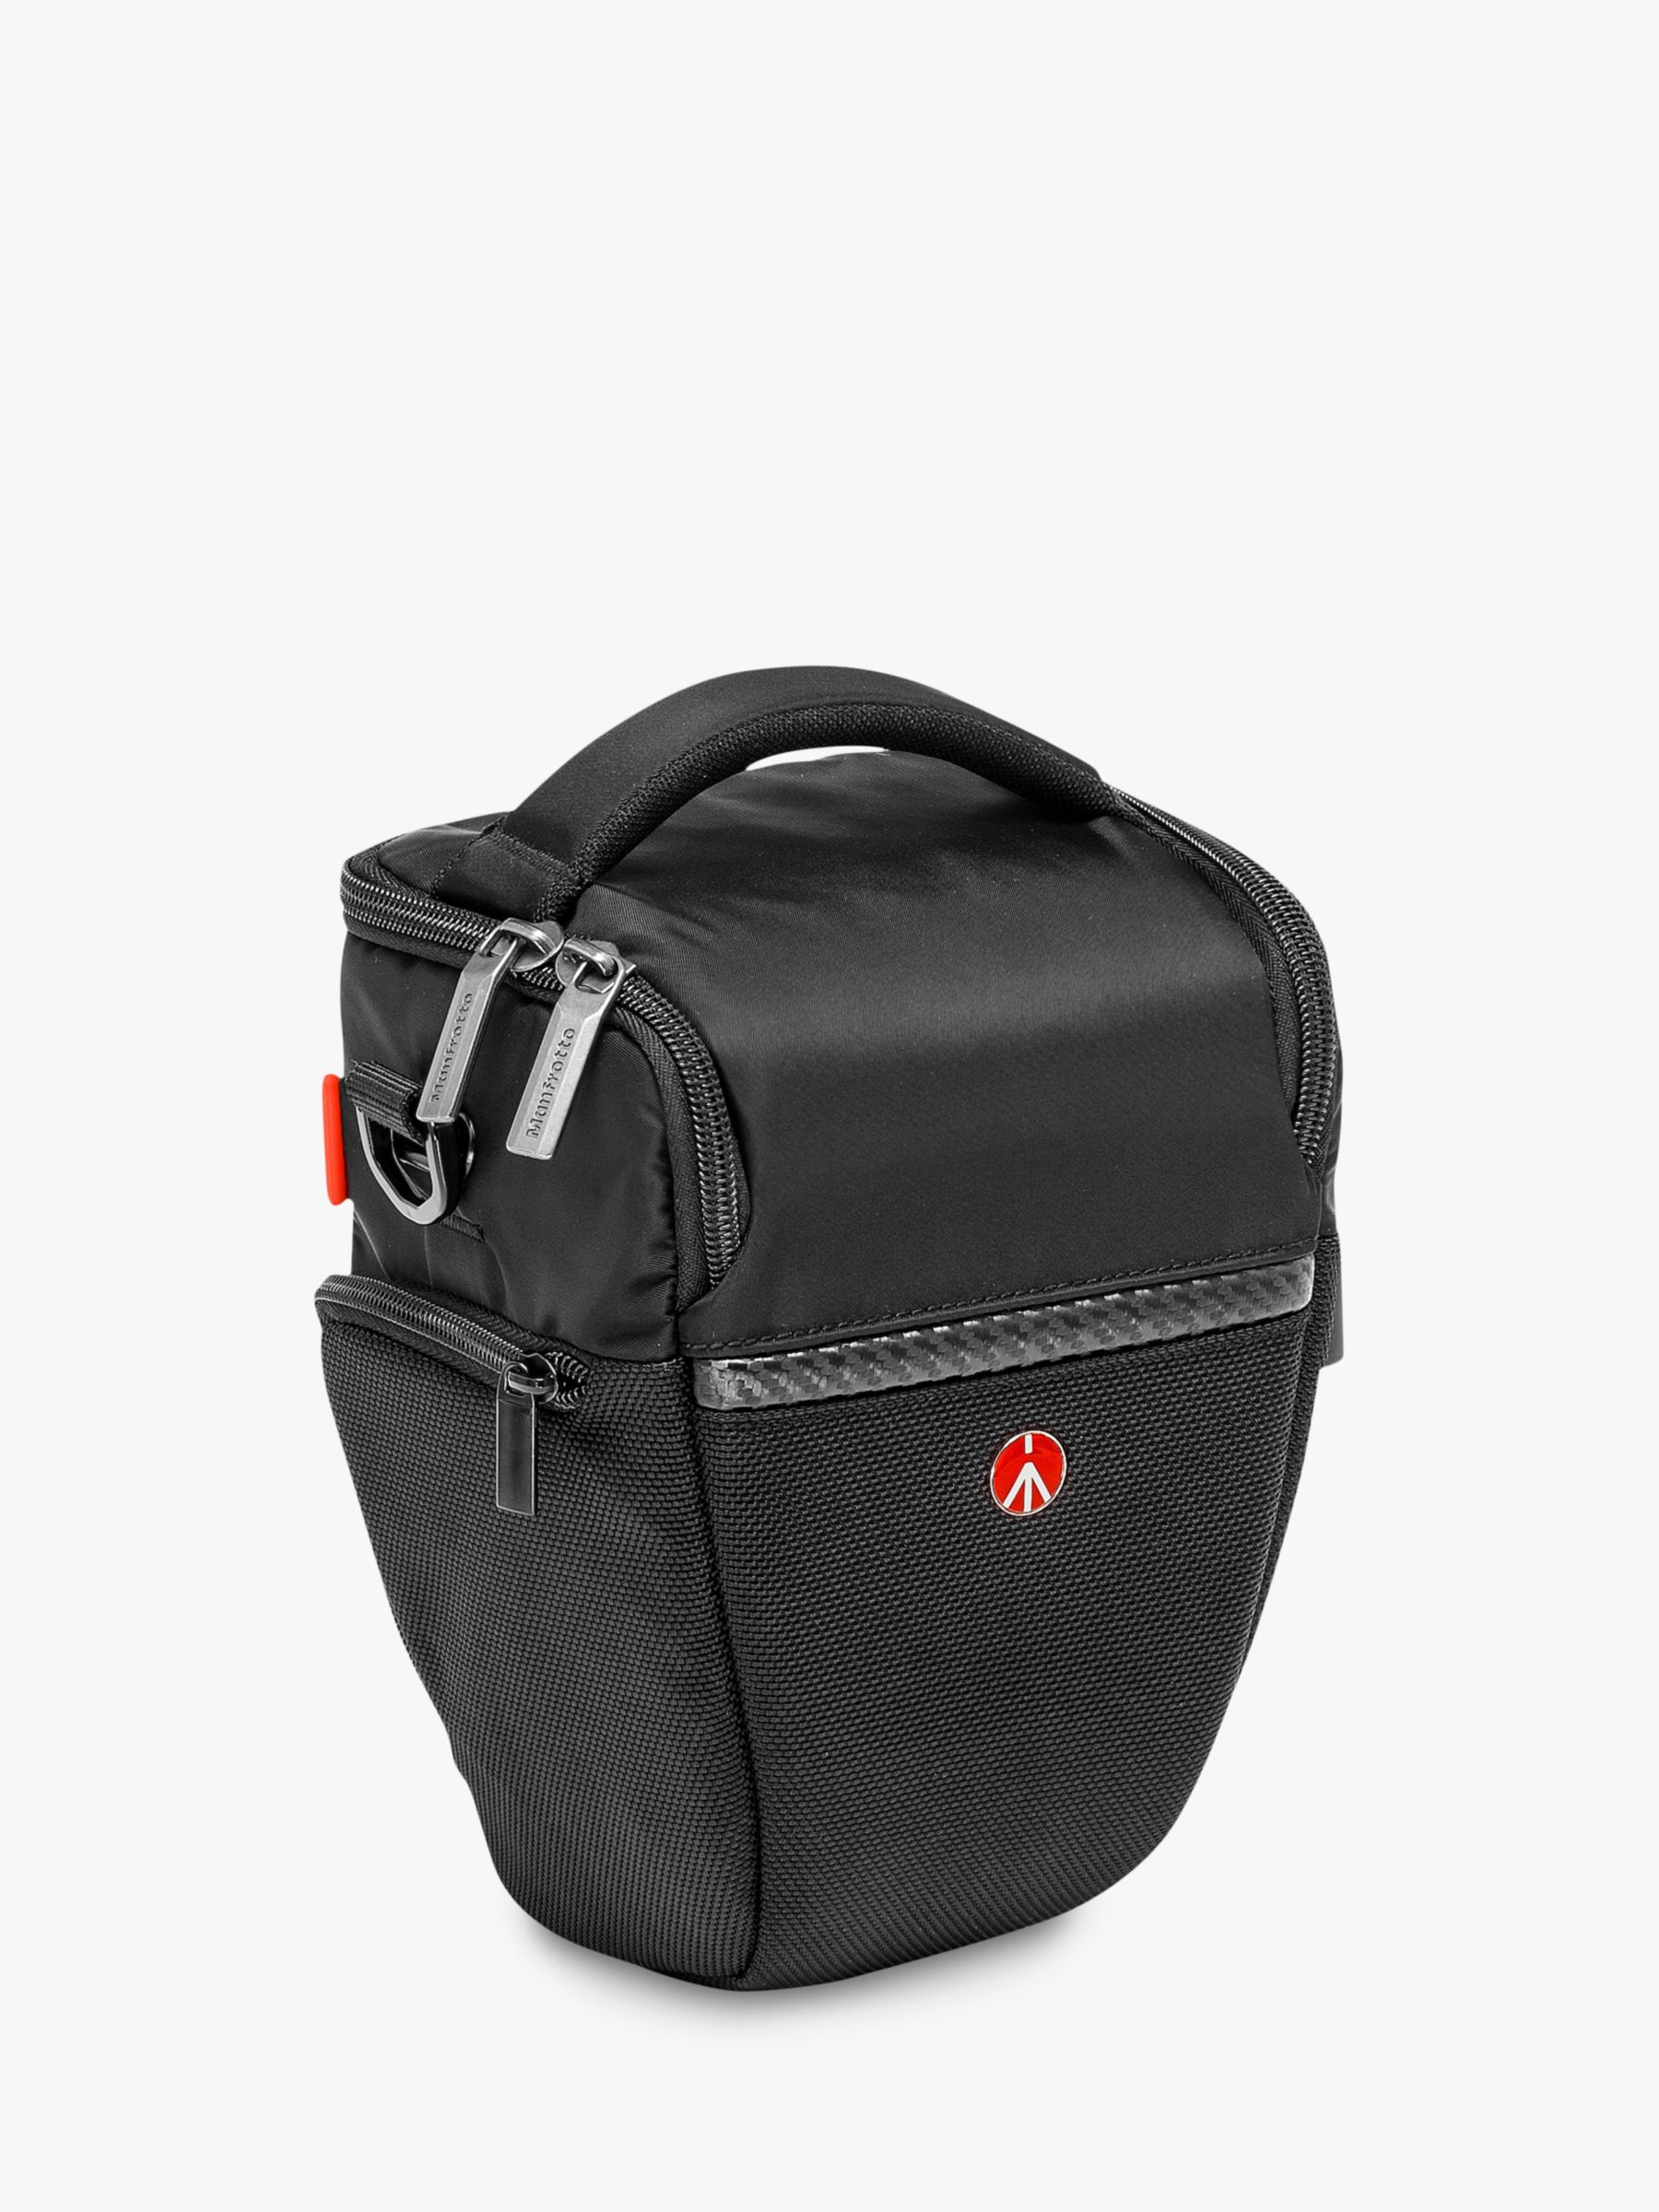 Manfrotto Manfrotto Advanced M Camera Holster Bag for DSLRs, Black